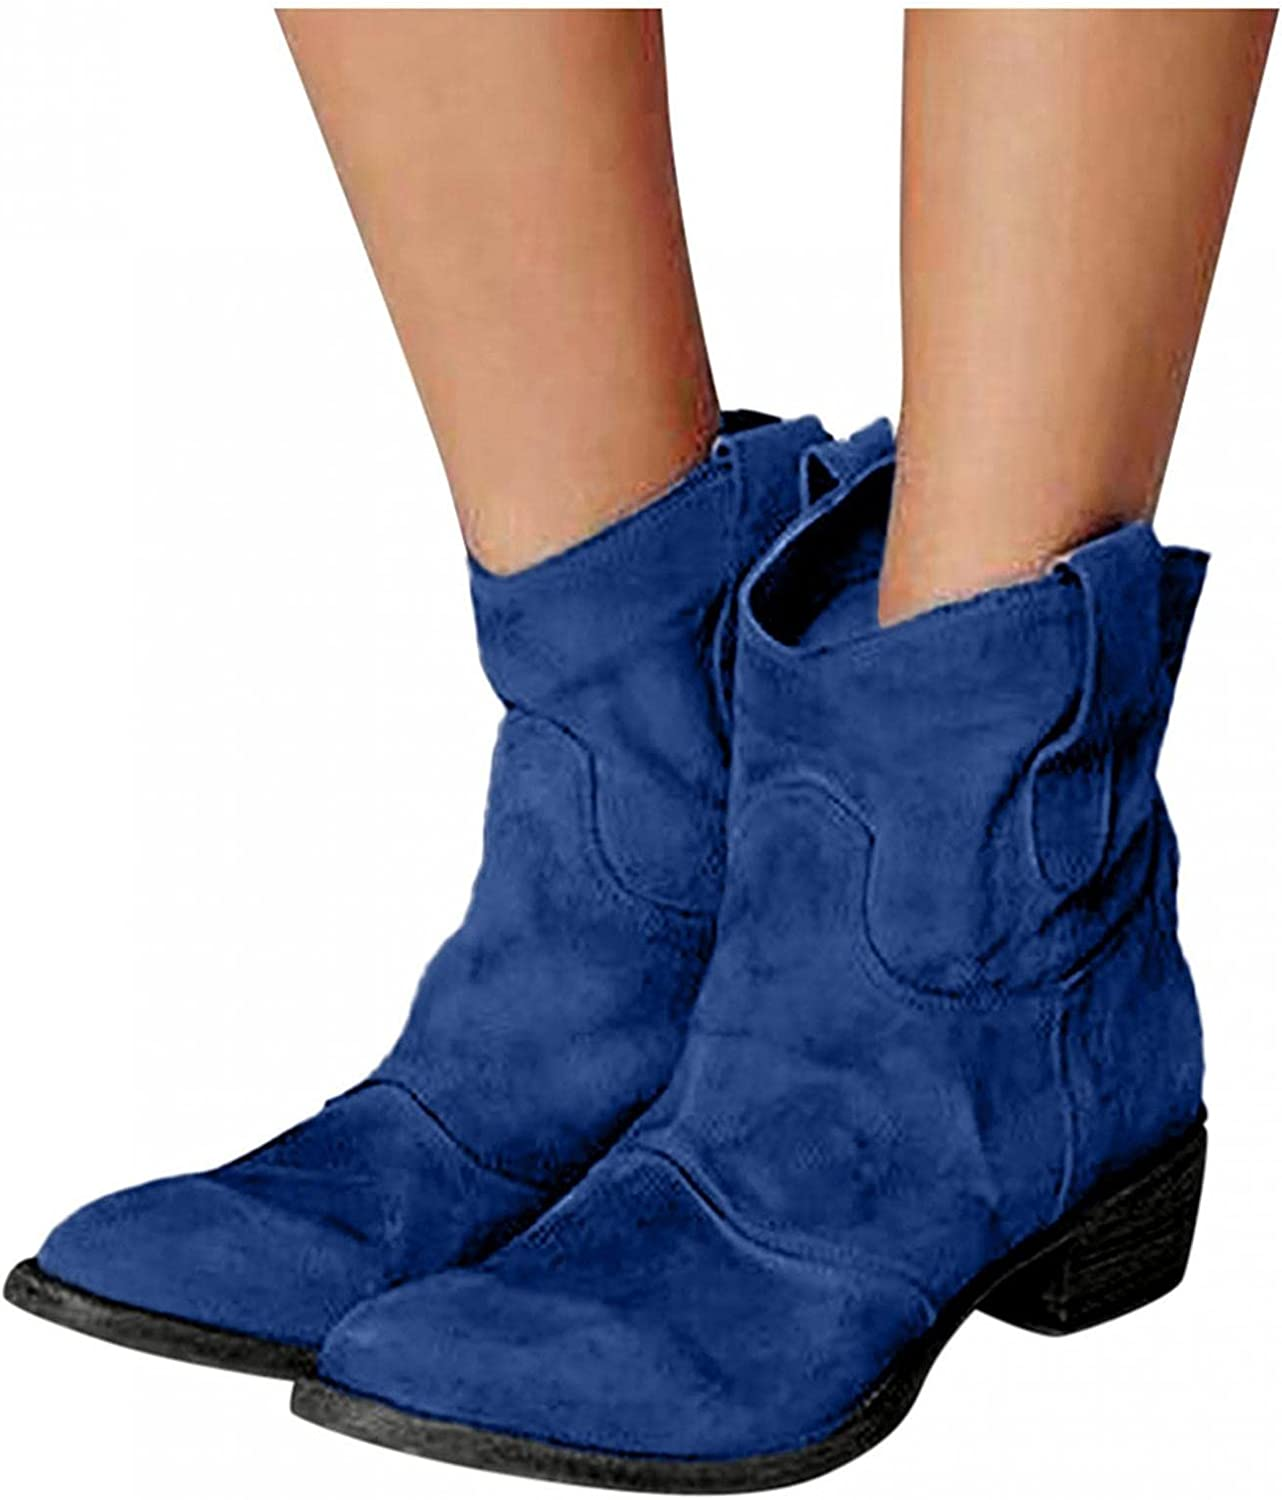 Zieglen Ankle Boots for Women, Vintage Roman Ankle Booties Slip On Low Heel Boots Hiking Boots Womens Cowboy Boots Shoes